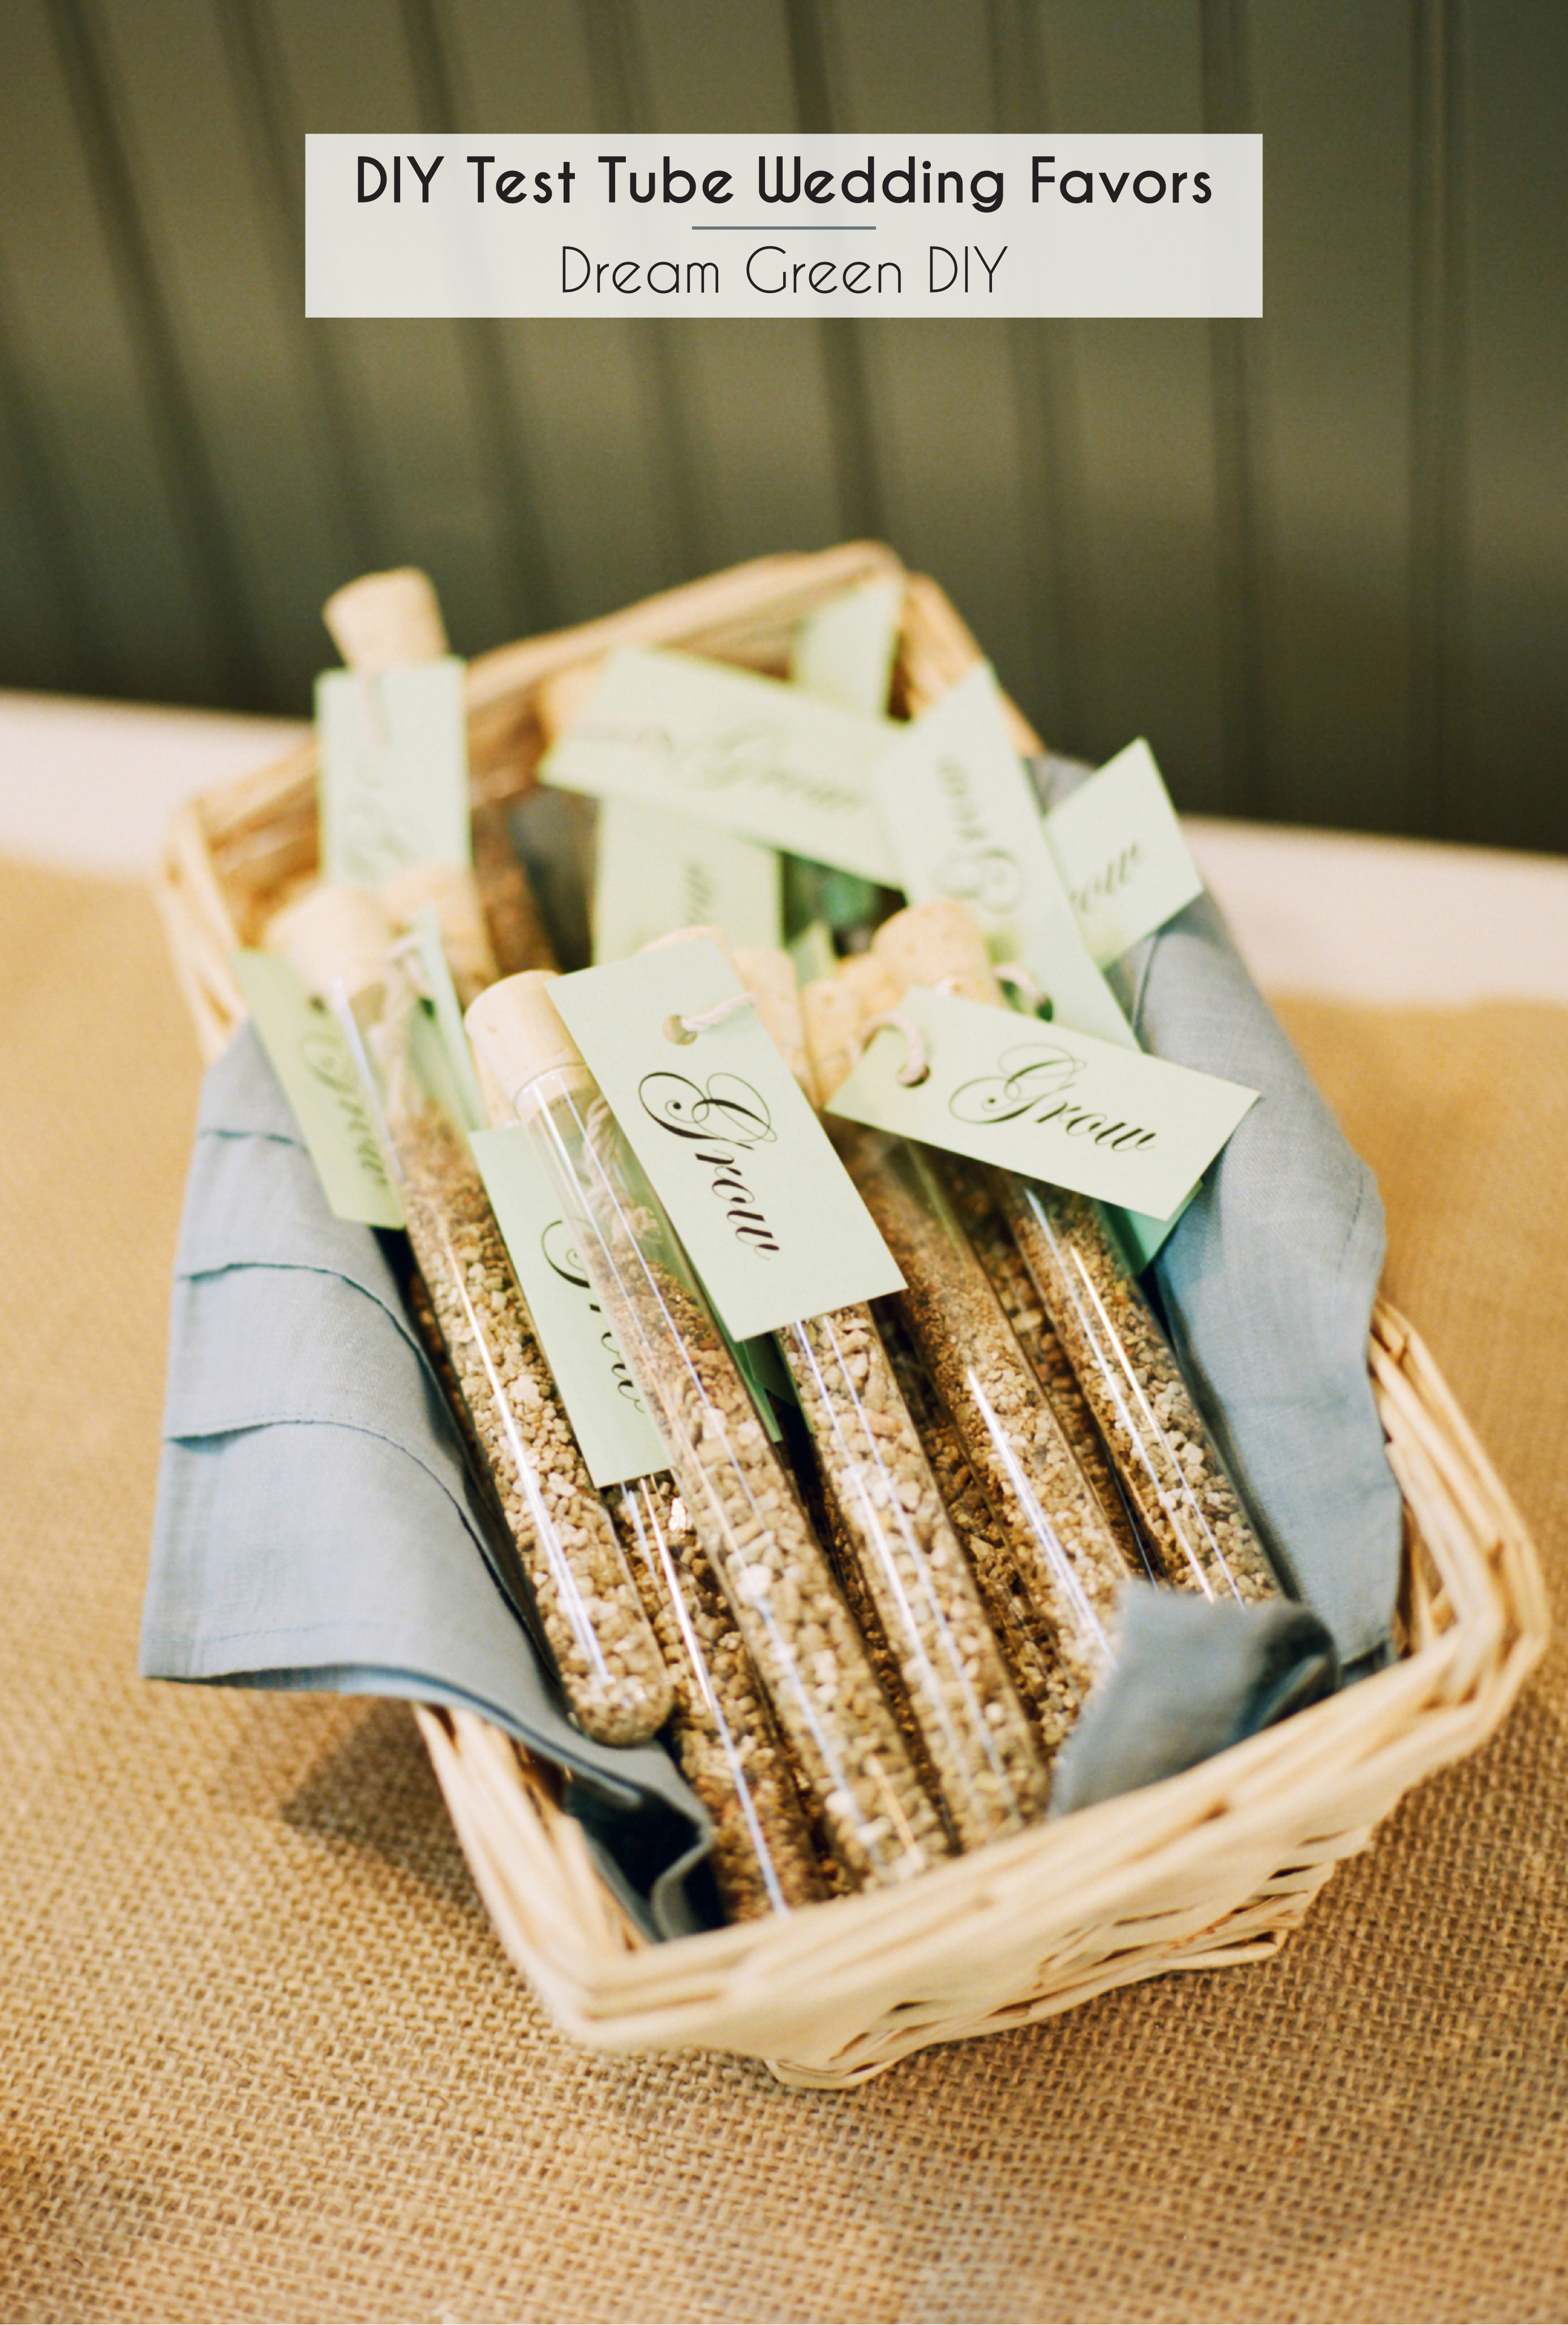 Best ideas about DIY Wedding Favors . Save or Pin DIY Test Tube Wedding Favors Dream Green DIY Now.